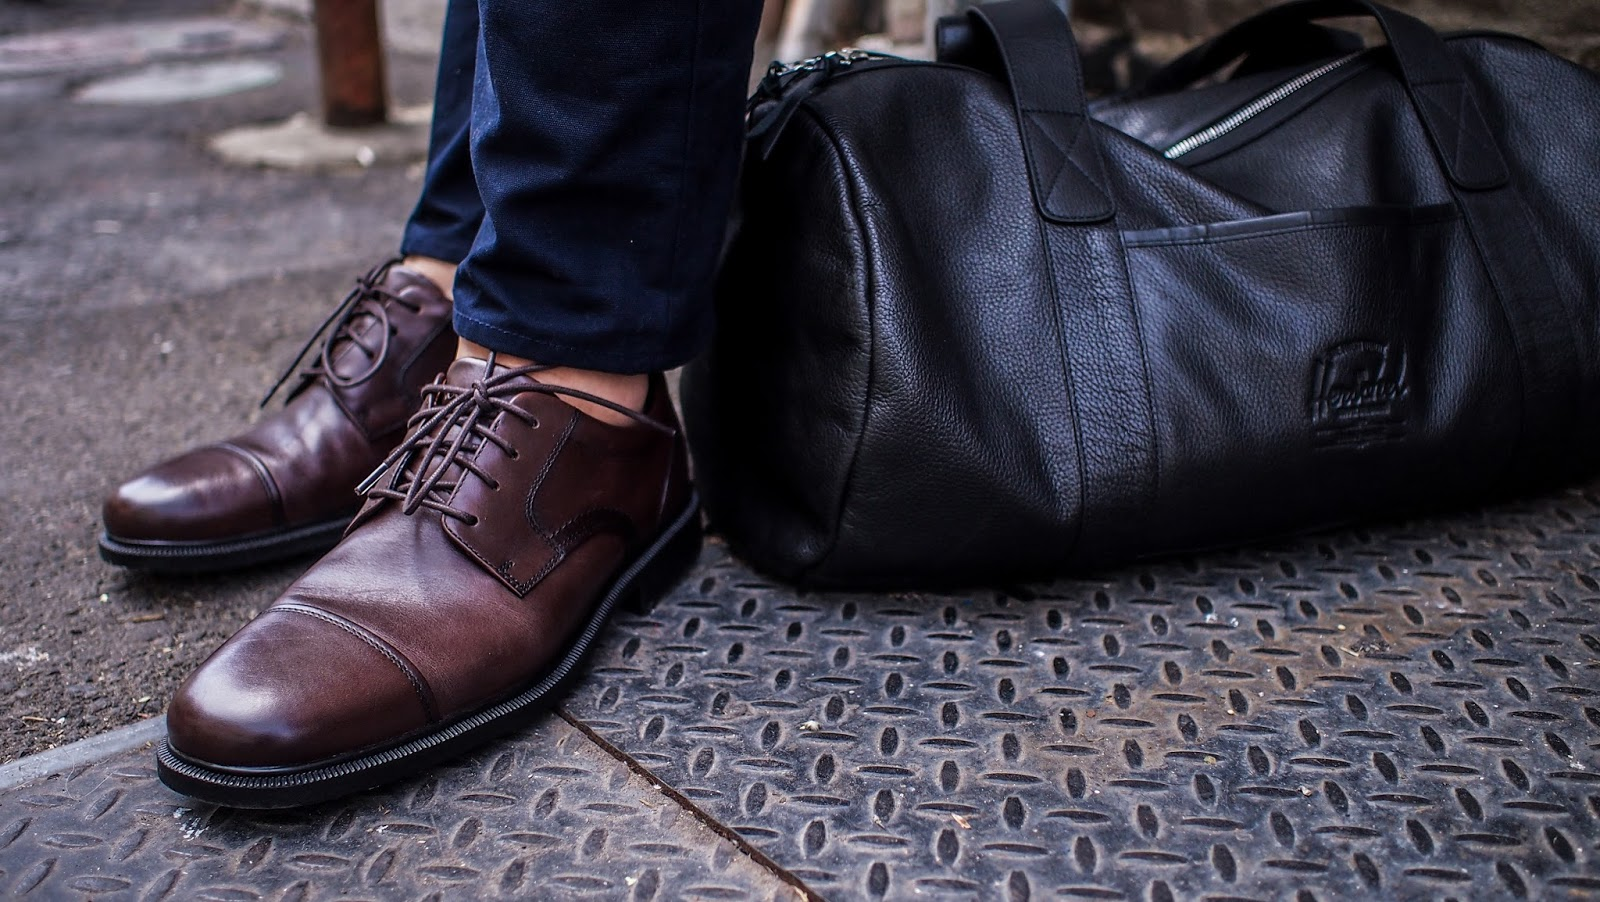 Rockport Shoe Giveaway Rules